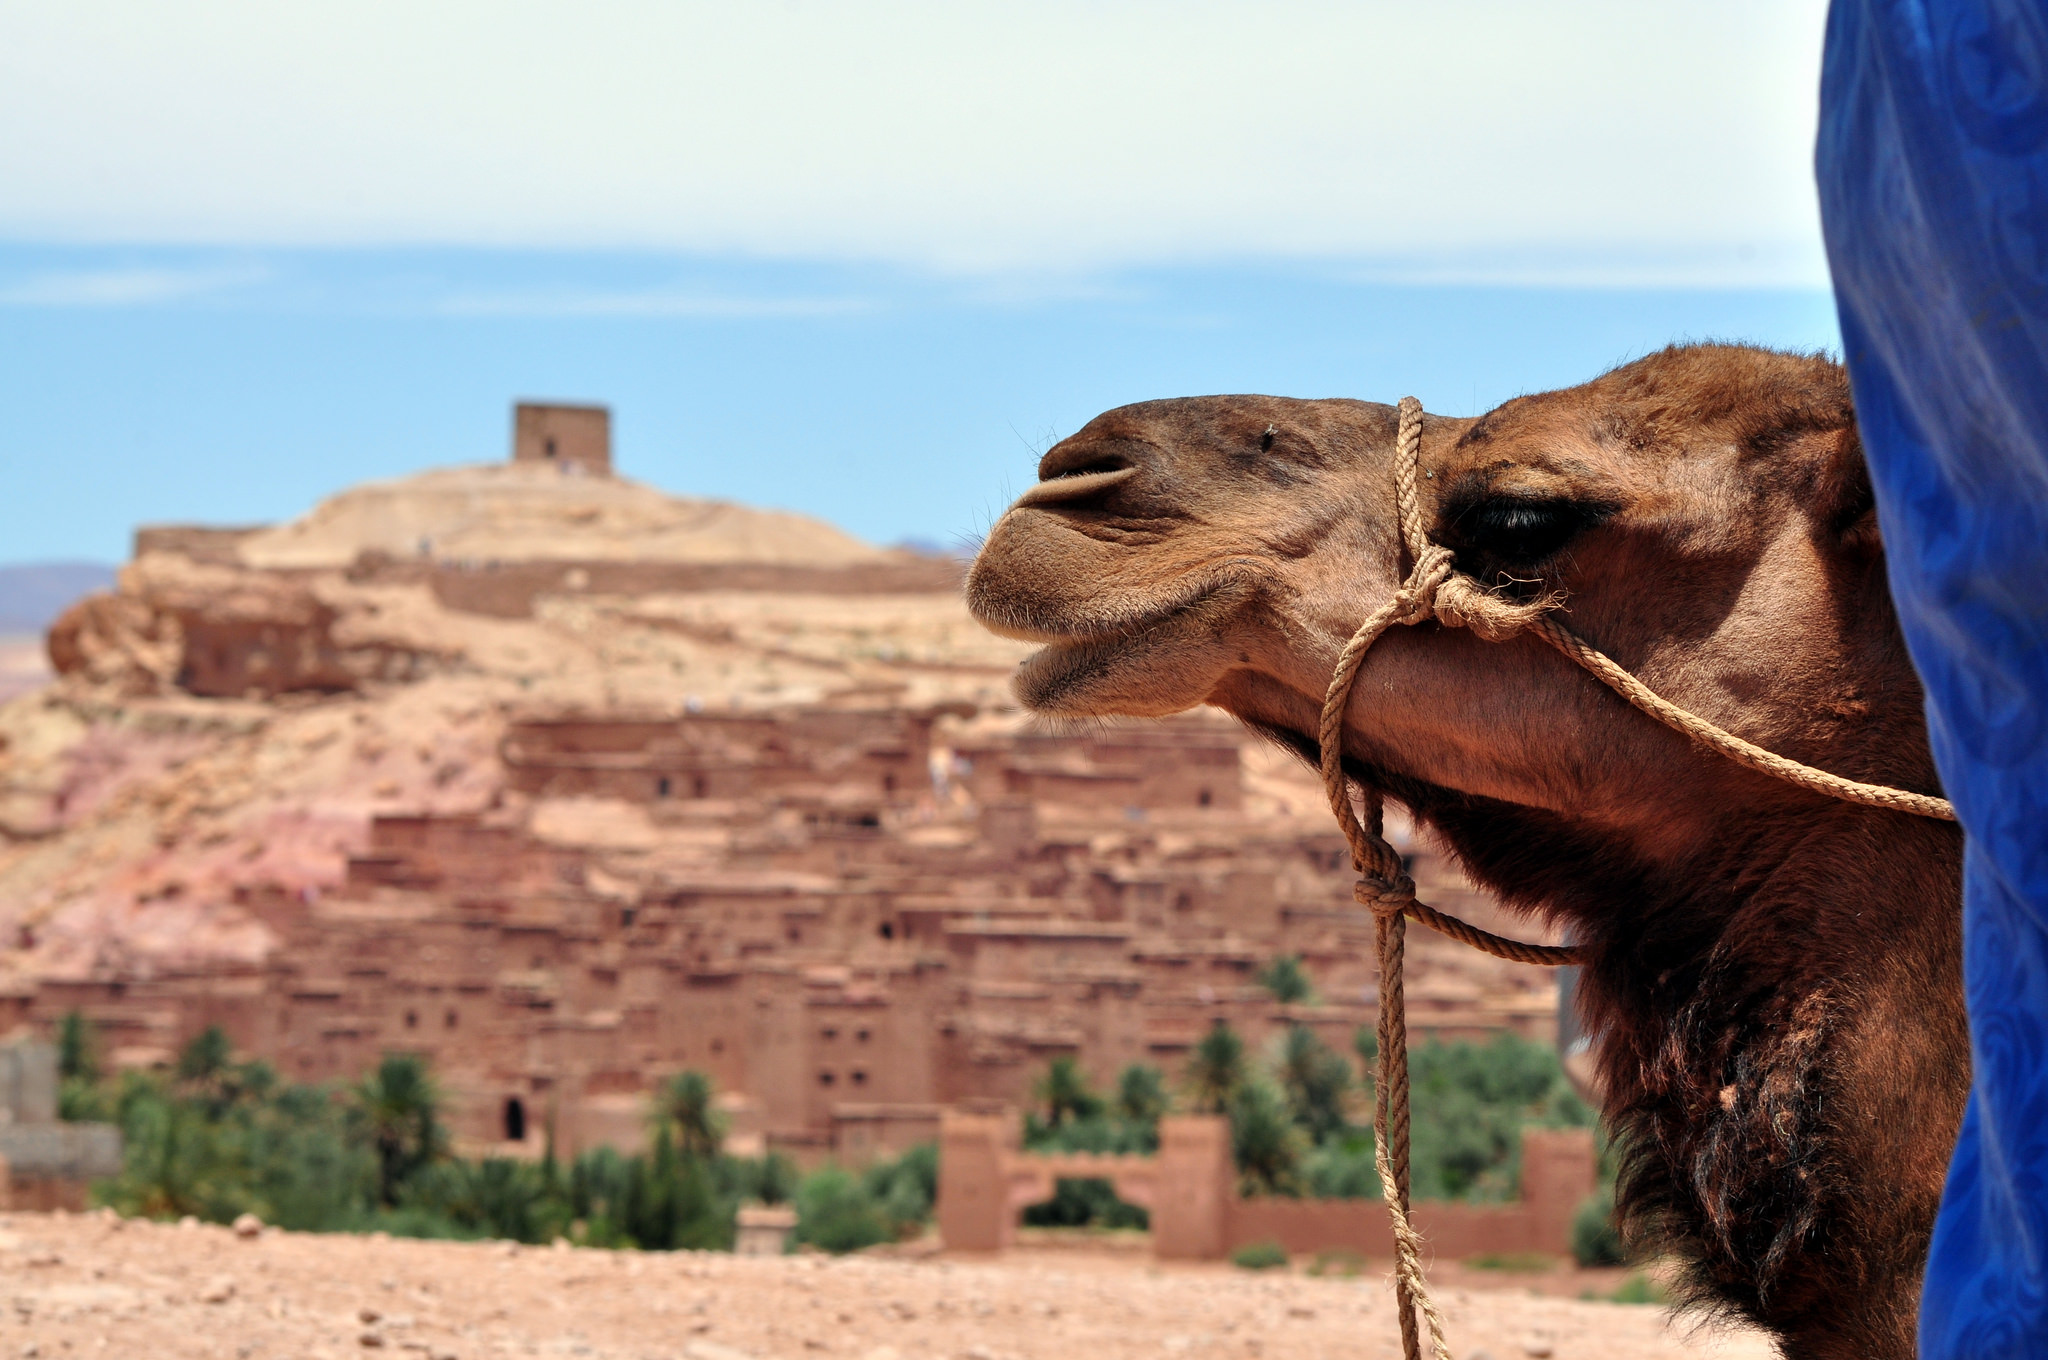 10 Top Guided Tours to Take in Marrakech